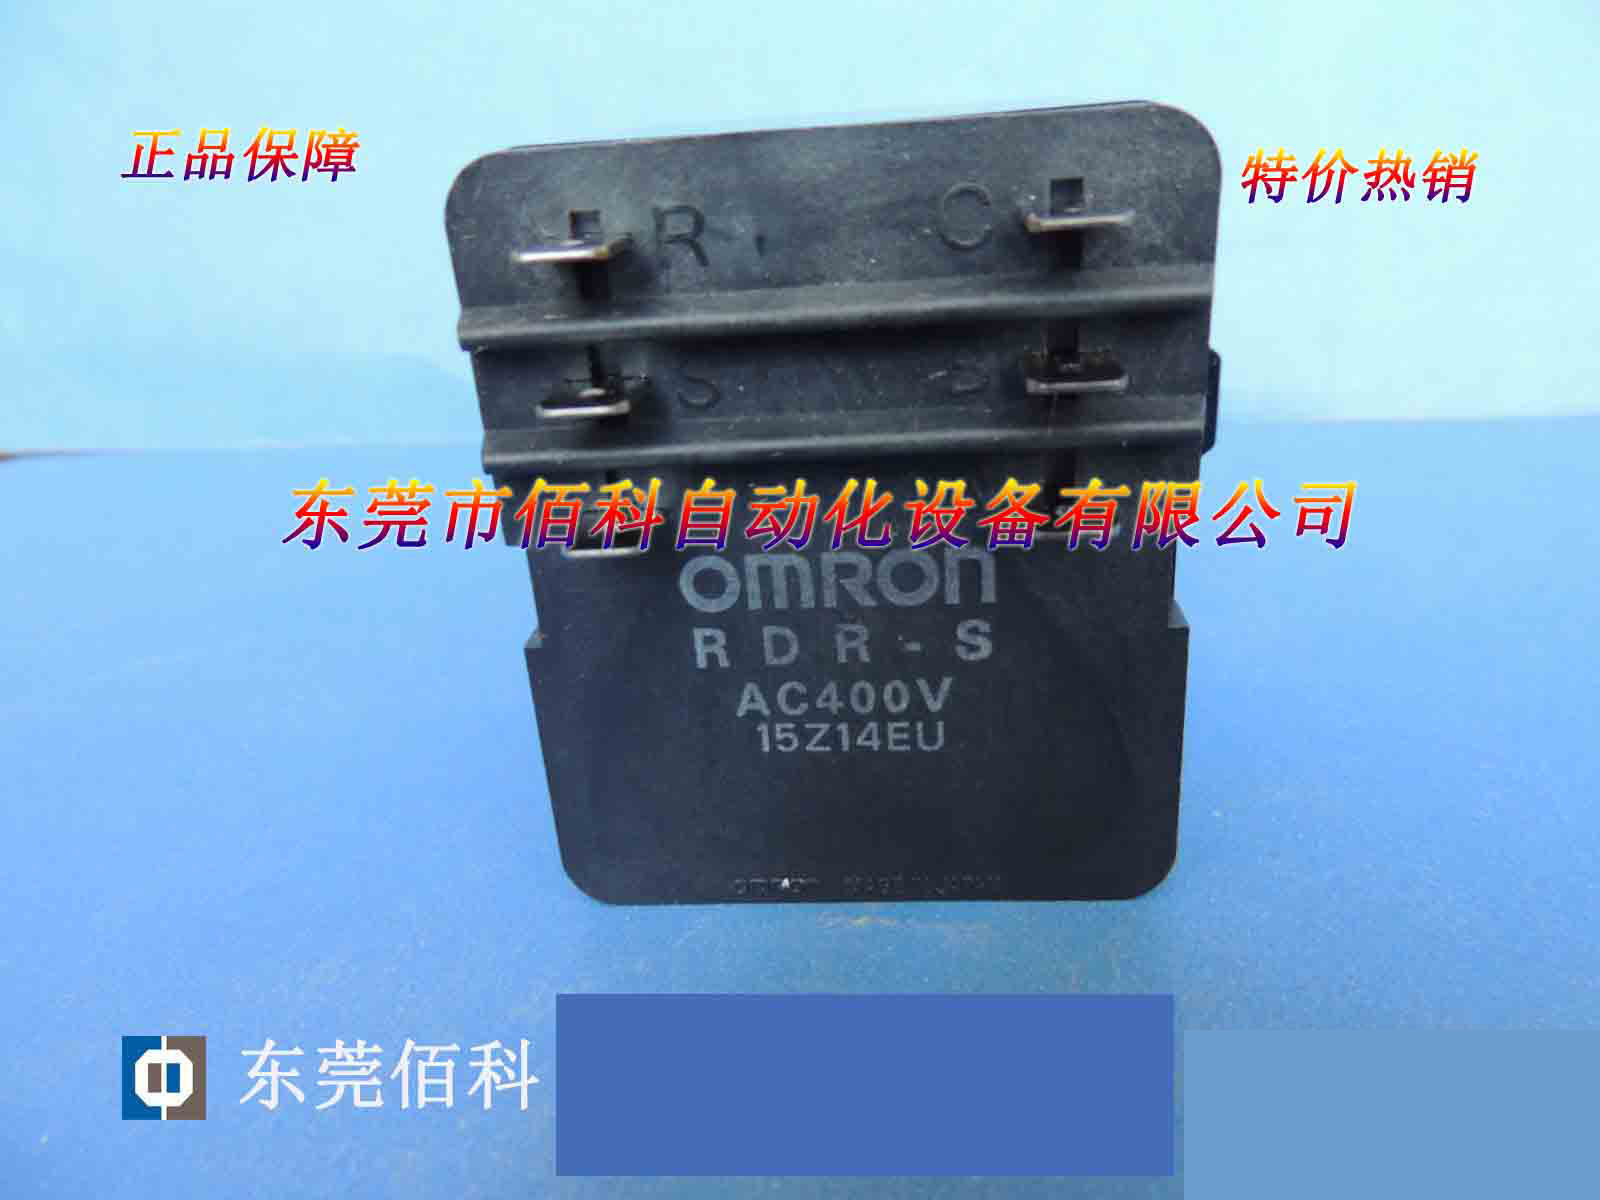 Special price new original OMRON component RDR-S AC400VSpecial price new original OMRON component RDR-S AC400V